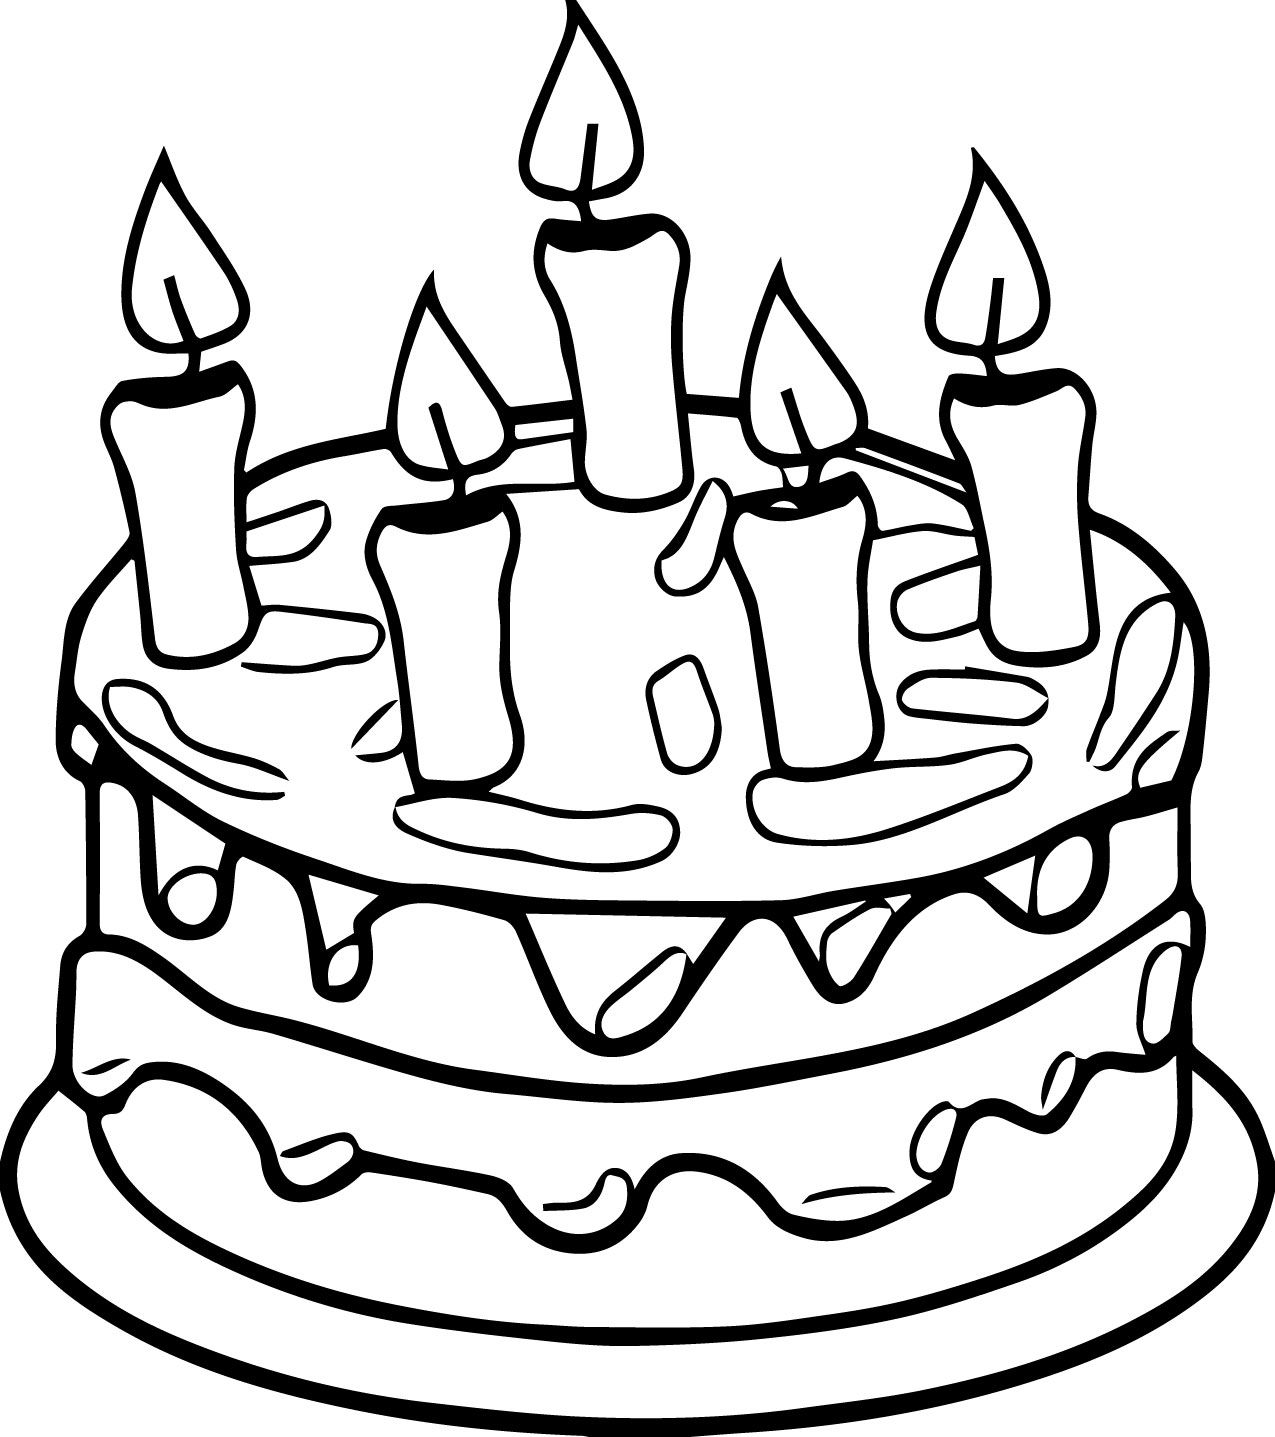 Cool Birthday Cake Candle Coloring Page Birthday Coloring Pages Happy Birthday Coloring Pages Cupcake Coloring Pages